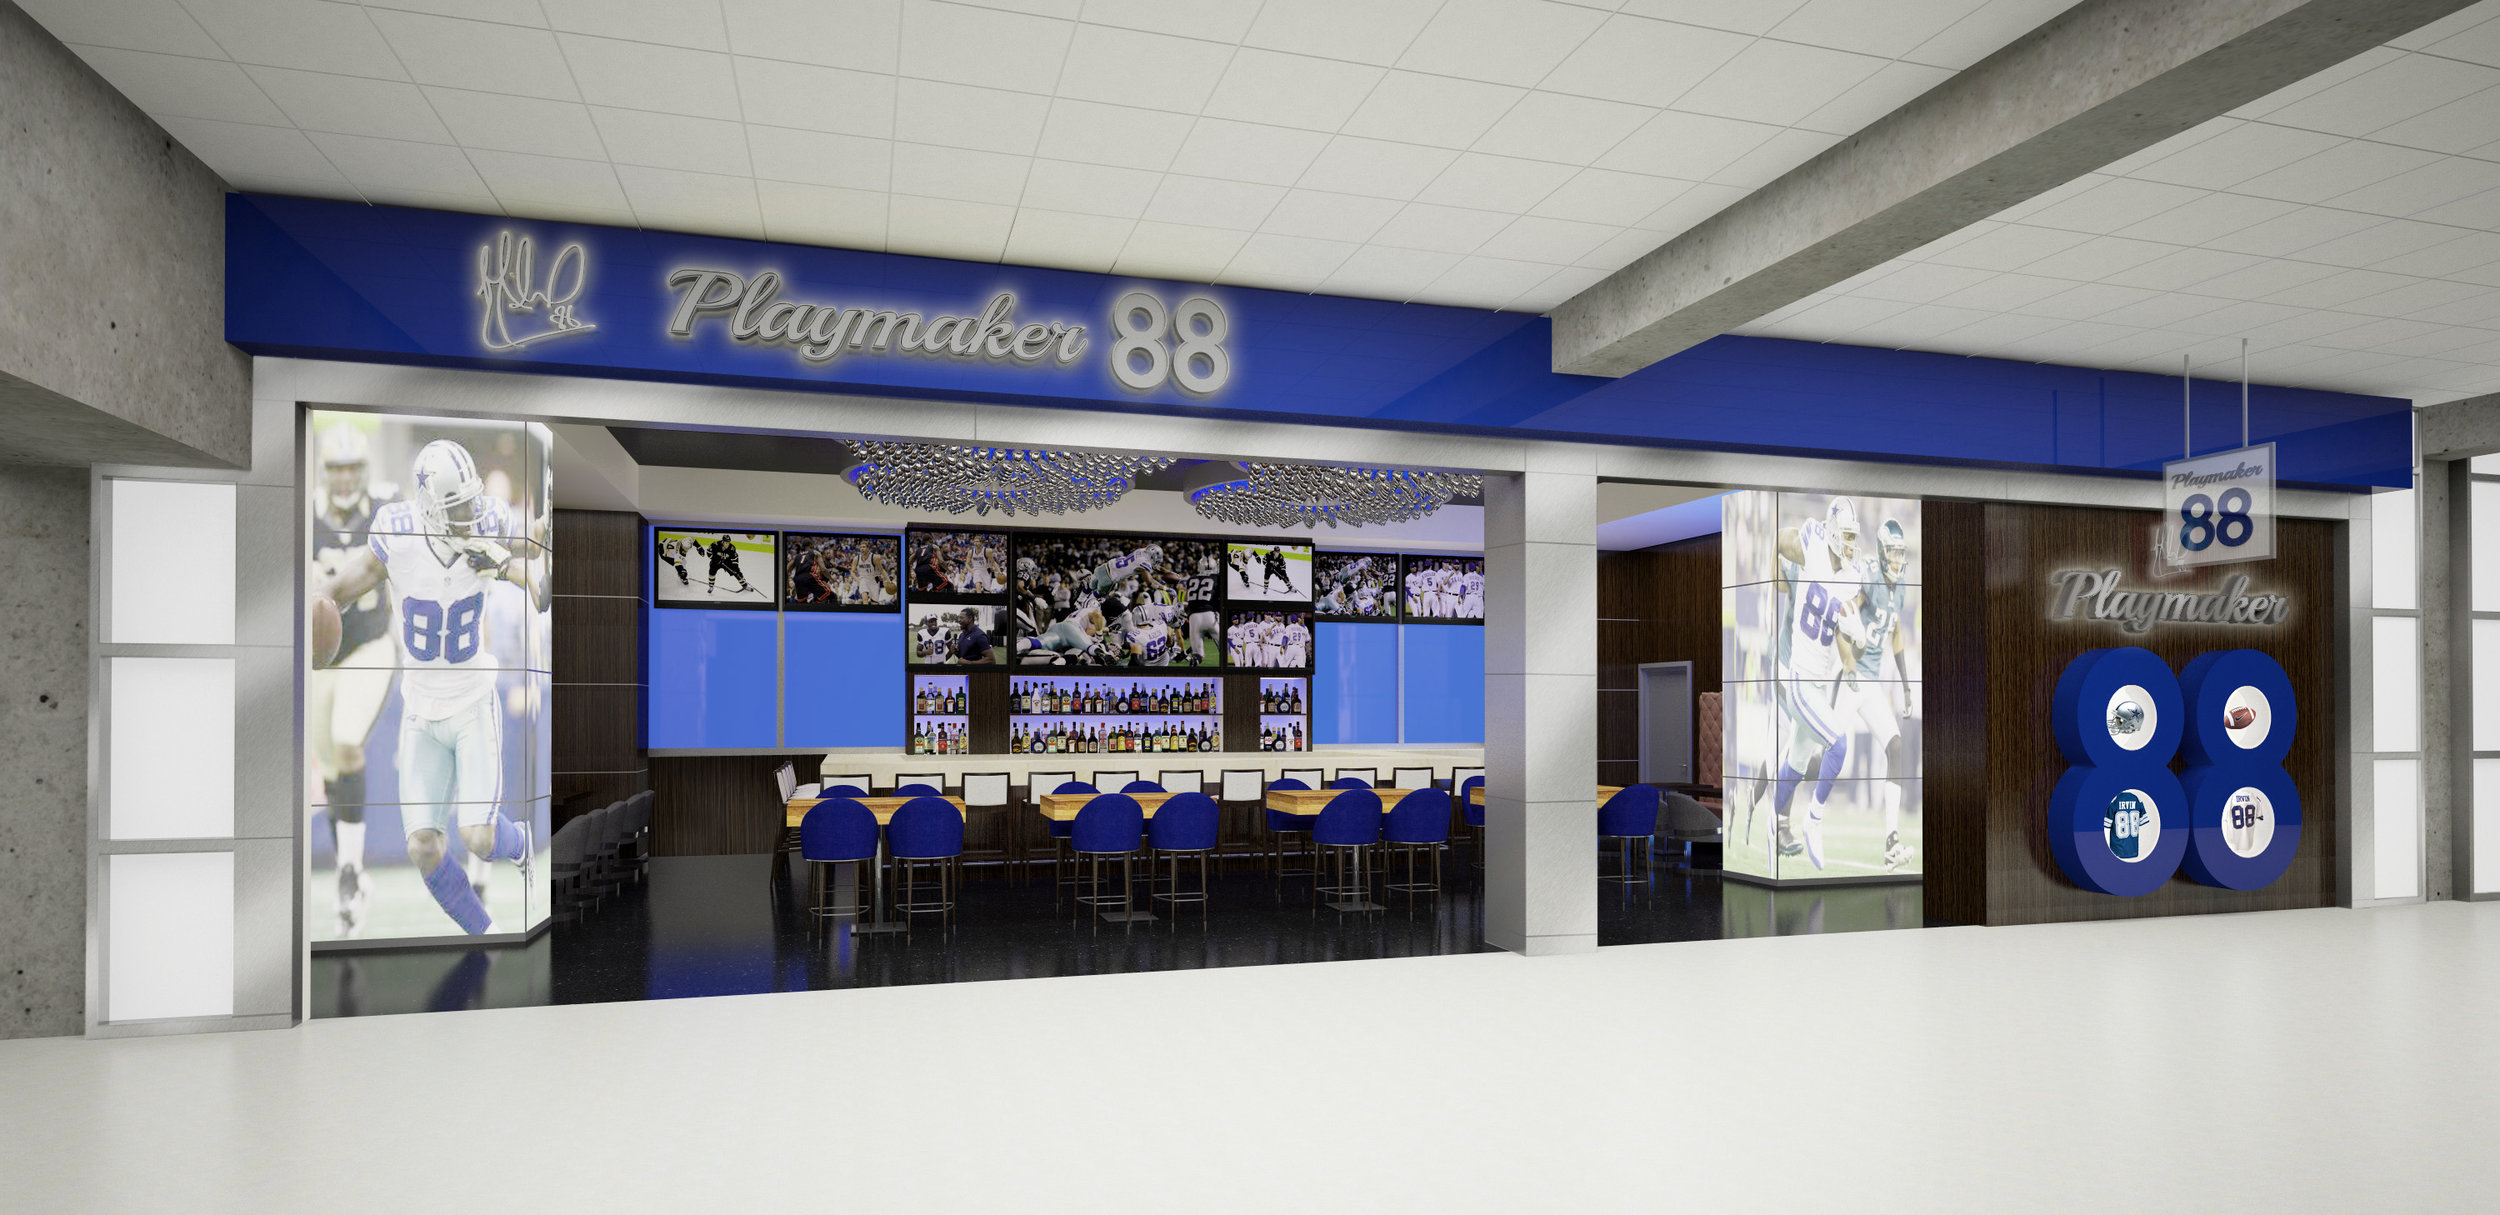 Playmaker 88 - Dallas Forth Worth Airport